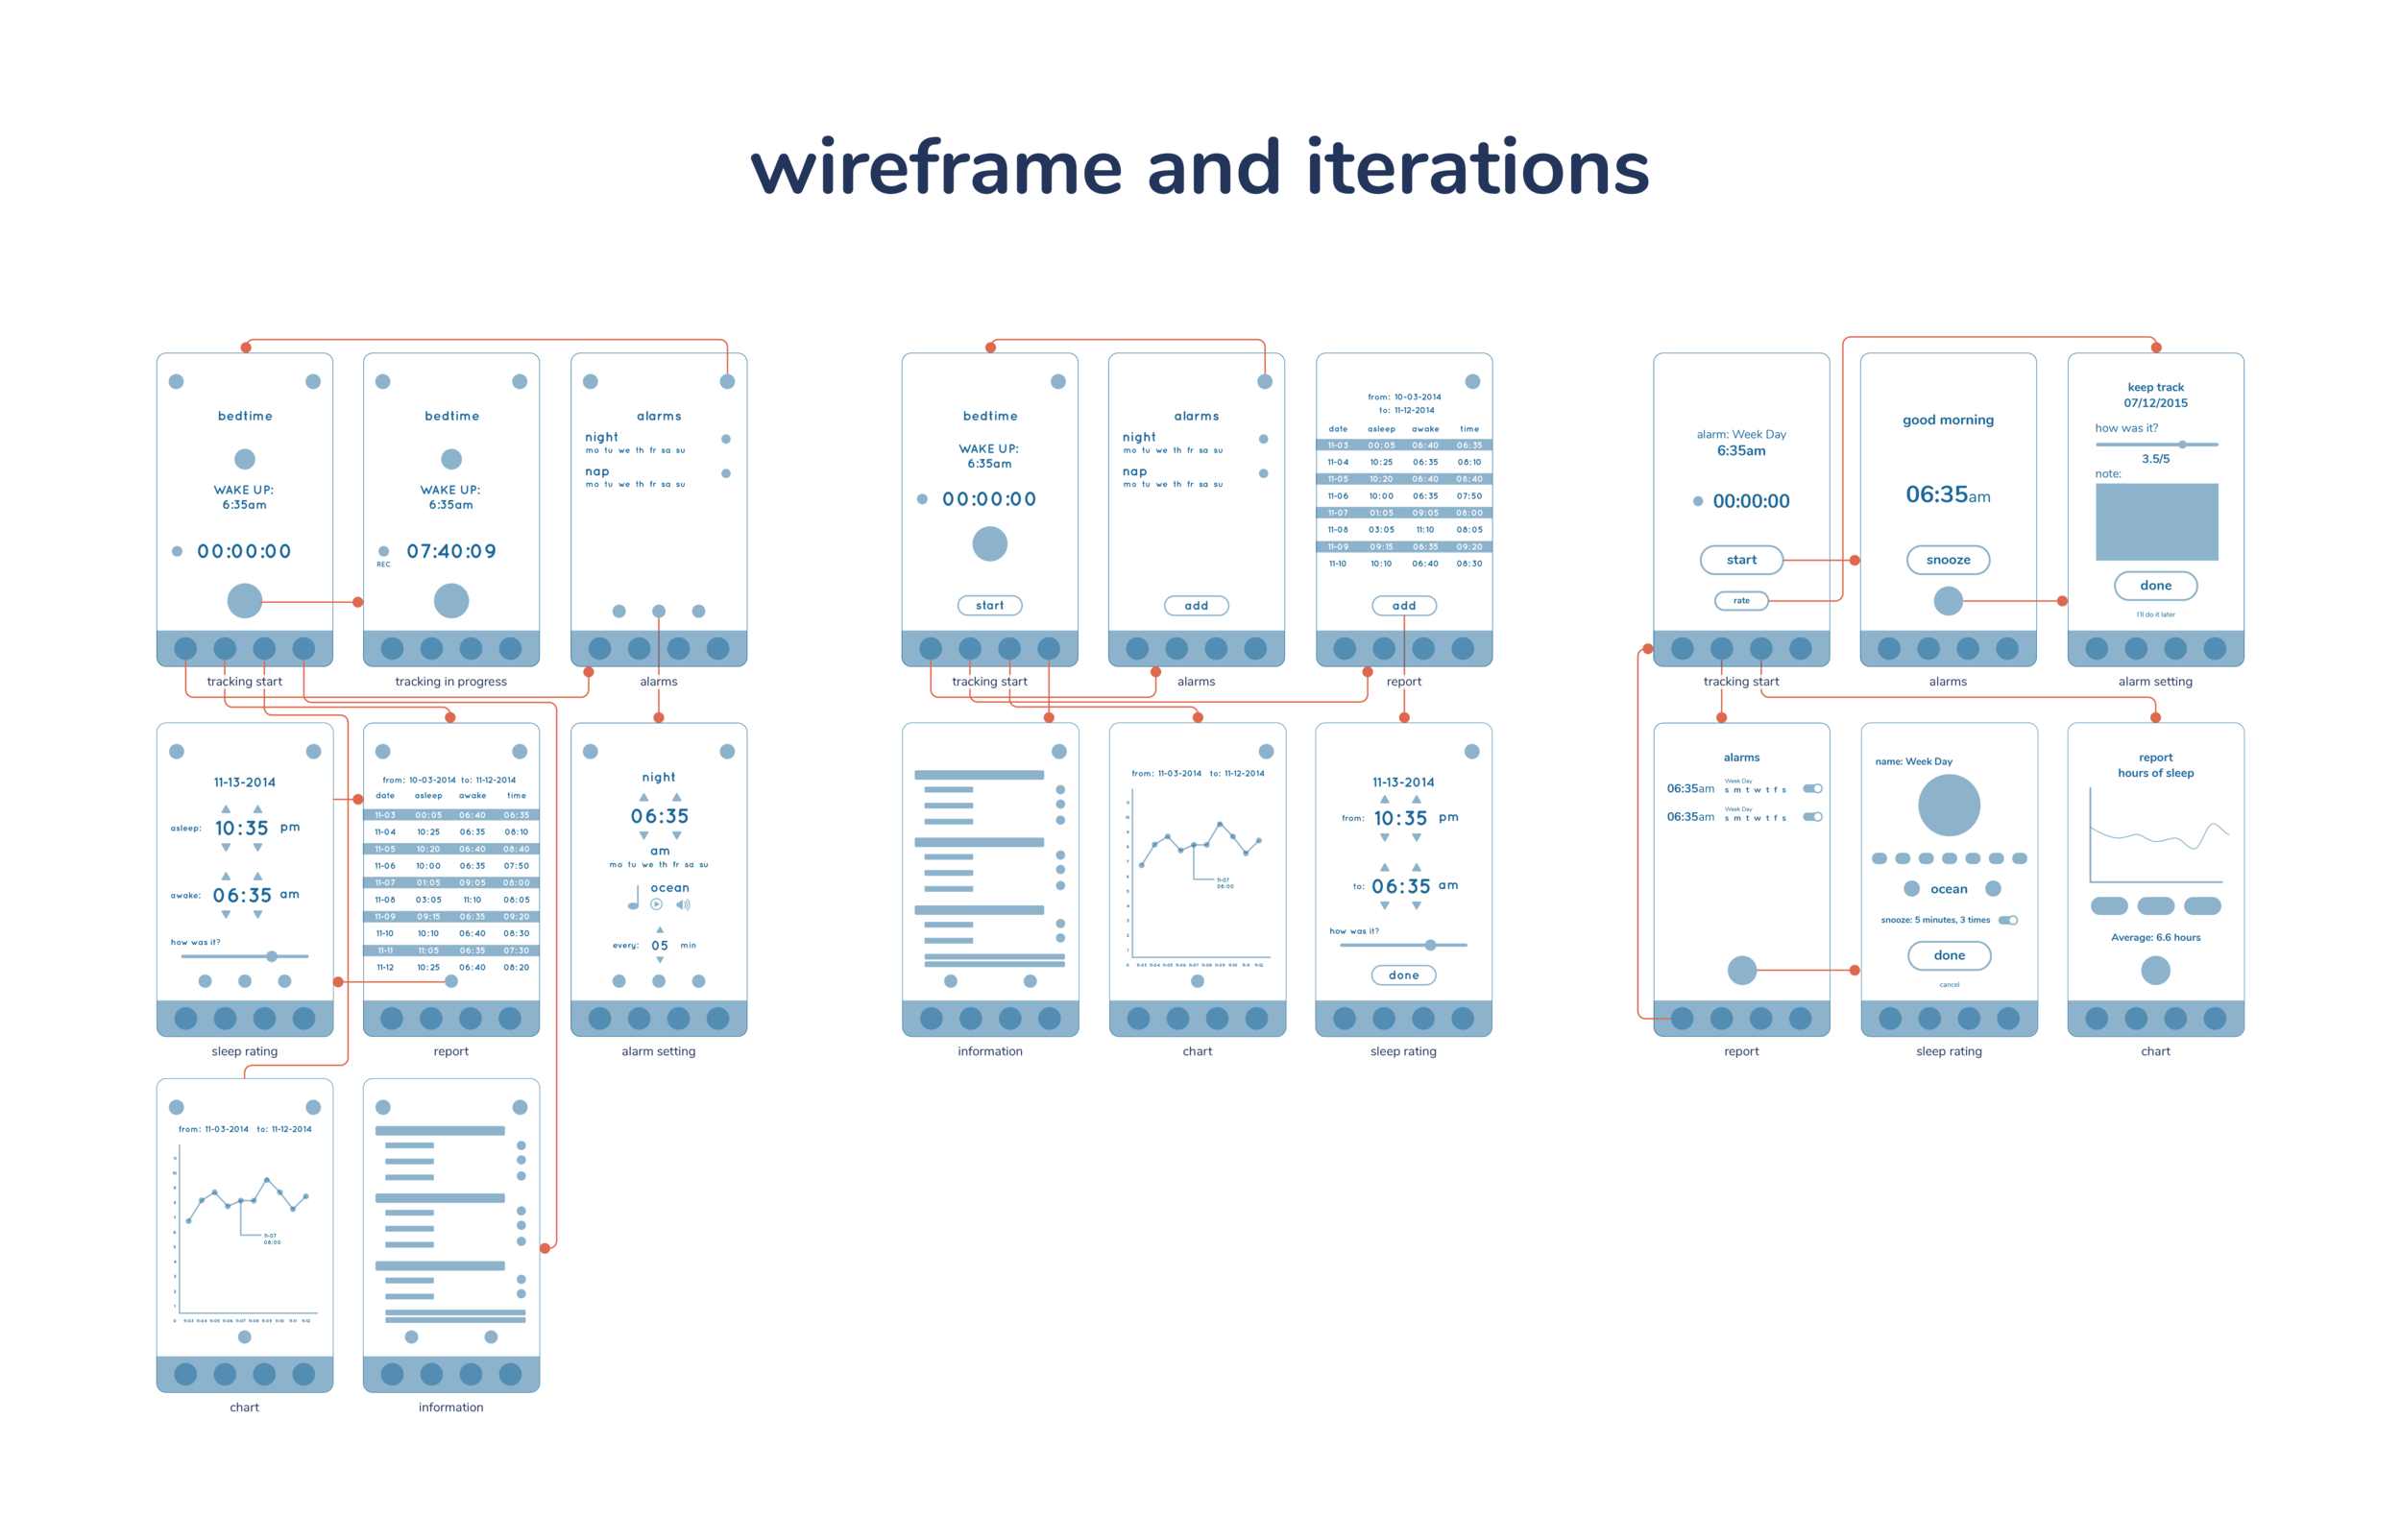 Bedtime-Wireframe.png